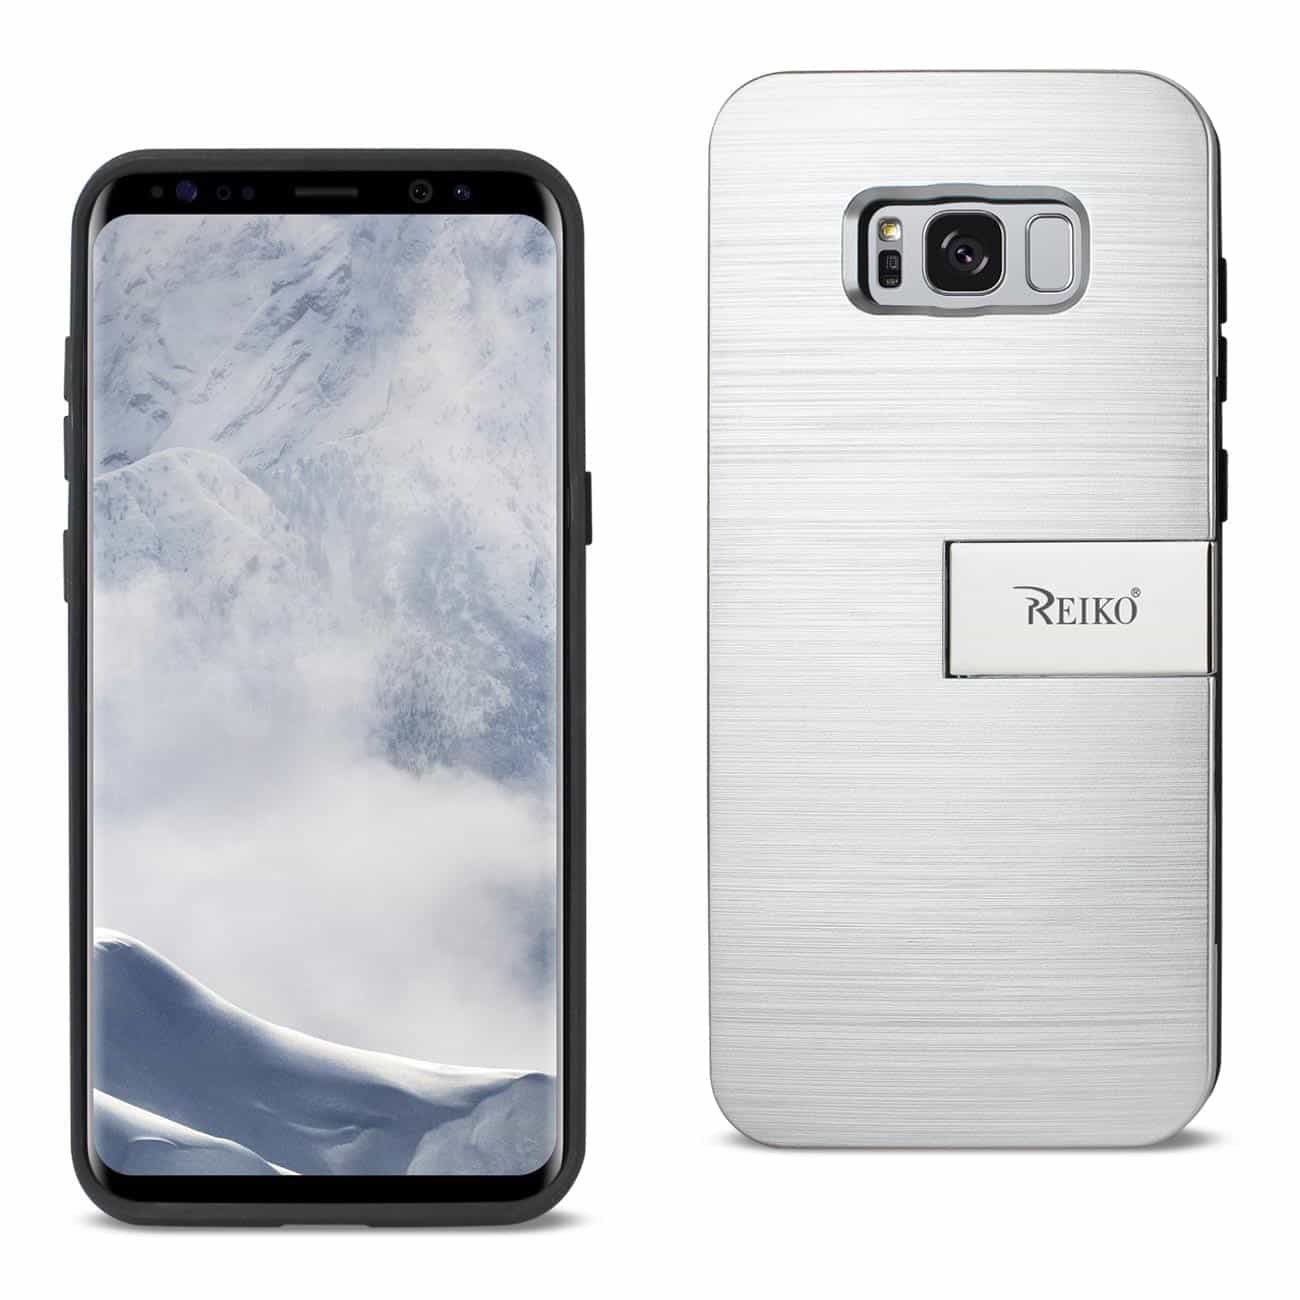 SAMSUNG GALAXY S8 SLIM ARMOR HYBRID CASE WITH CARD HOLDER AND KICKSTAND IN SILVER